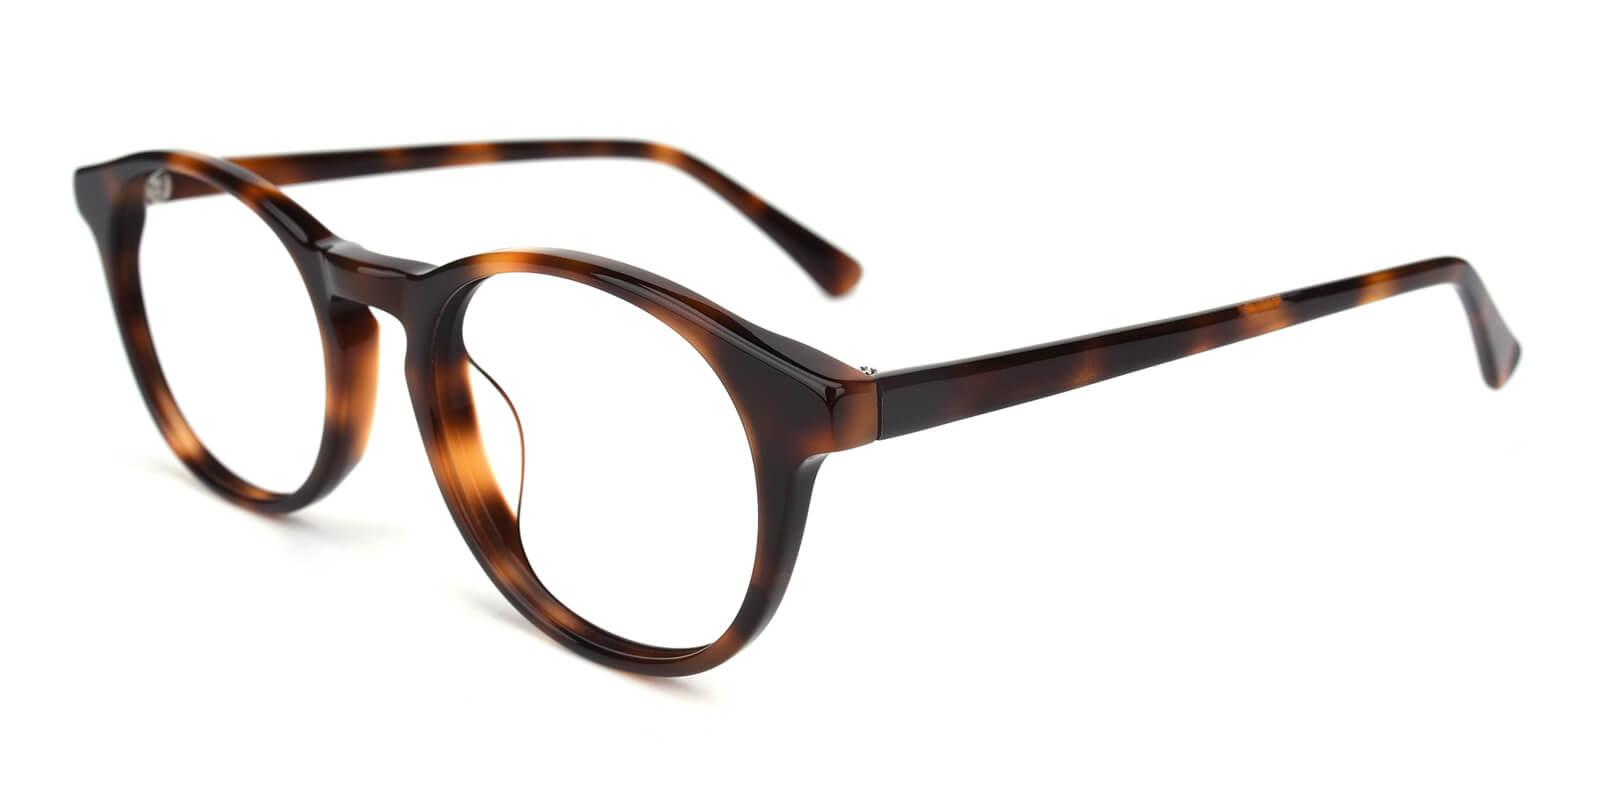 Concept-Tortoise-Oval-Acetate-Eyeglasses-additional1